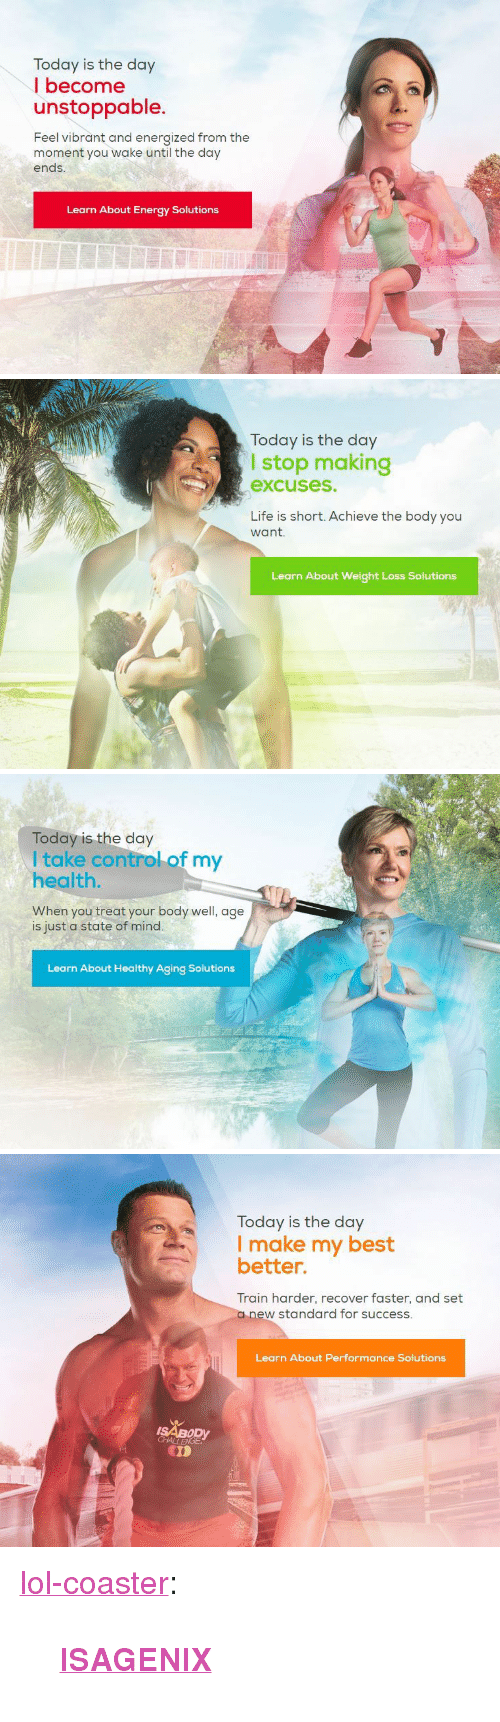 "Energized: Today is the day  I become  unstoppable.  Feel vibrant and energized from the  moment you wake until the day  ends  Learn About Energy Solutions   Today is the day  I stop making  excuses.  Life is short. Achieve the body you  want.  Learn About Weight Loss Solutions   Today is the day  I take control of my  health  When you treat your body well, age  is just a state of mind.  Learn About Healthy Aging Solutions   Today is the day  I make my best  better.  Train harder, recover faster, and set  a new standard for success.  Learn About Performance Solutions  ISABODY  CD <p><a href=""http://lol-coaster.tumblr.com/post/159839994492/isagenix"" class=""tumblr_blog"">lol-coaster</a>:</p><blockquote><p><b><a href=""https://gohealthful.isagenix.com/"">ISAGENIX</a></b></p></blockquote>"